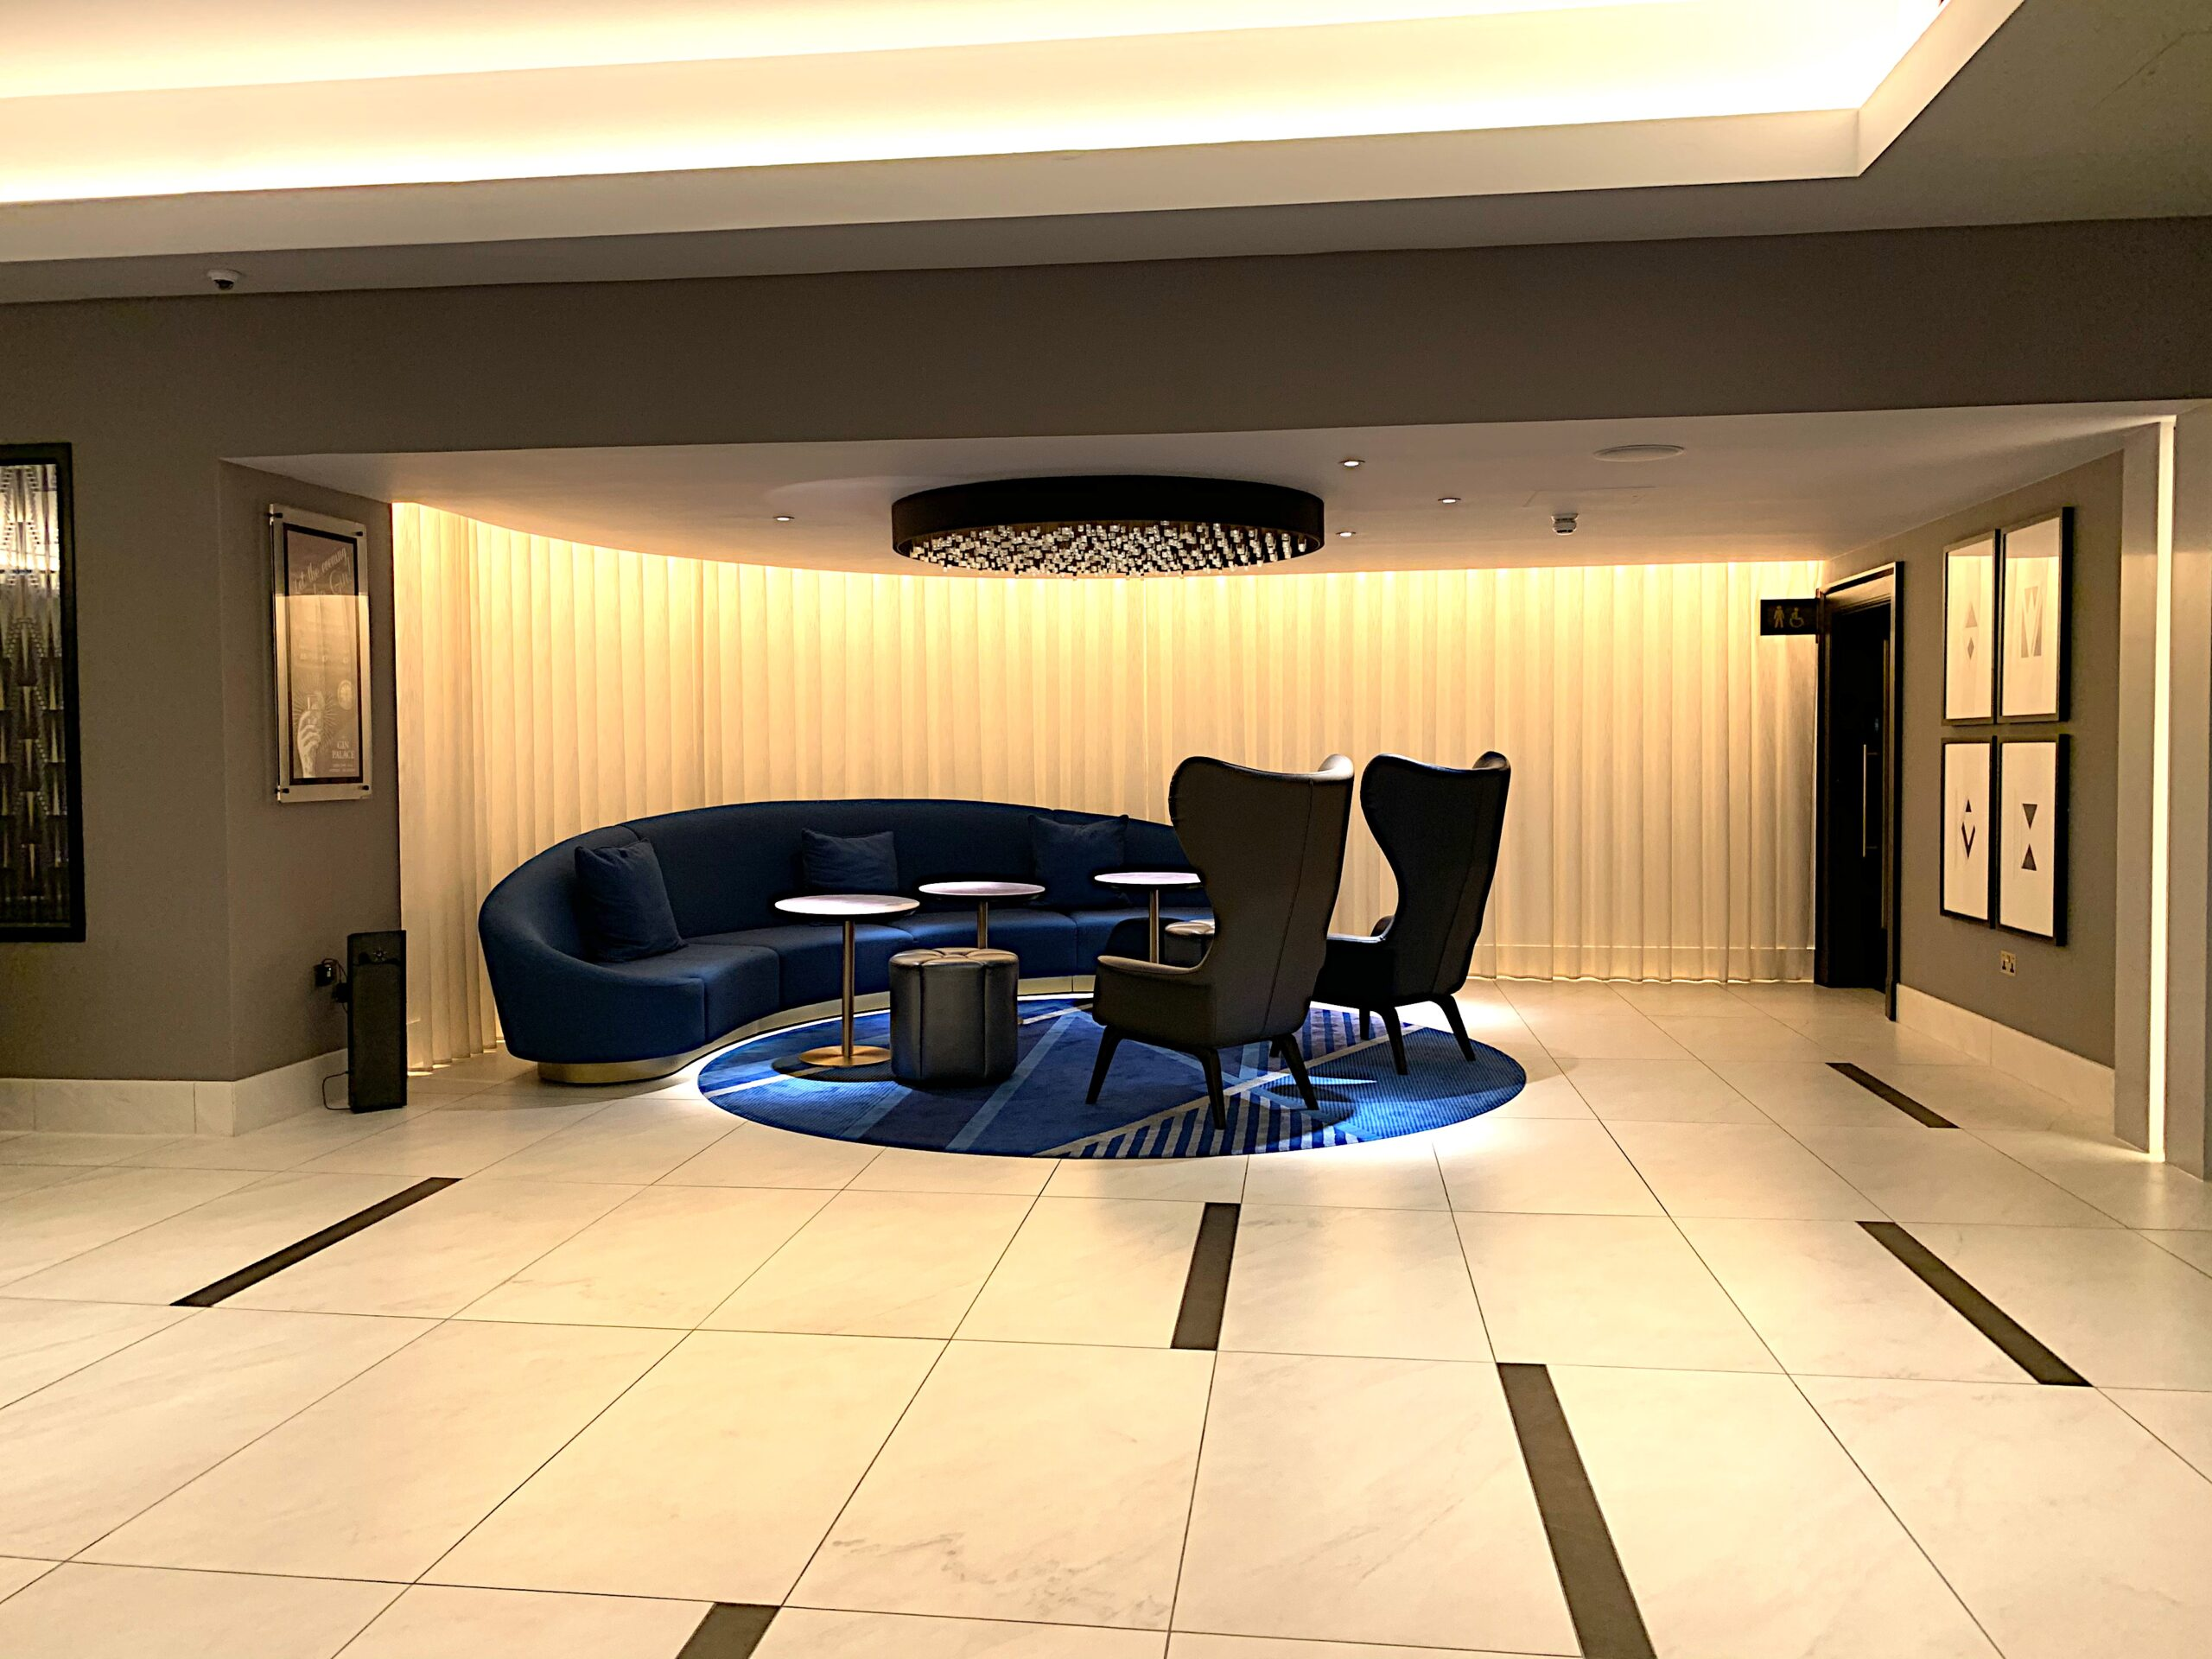 The lobby at Strand Palace Hotel offers plenty of spacious areas in which to relax